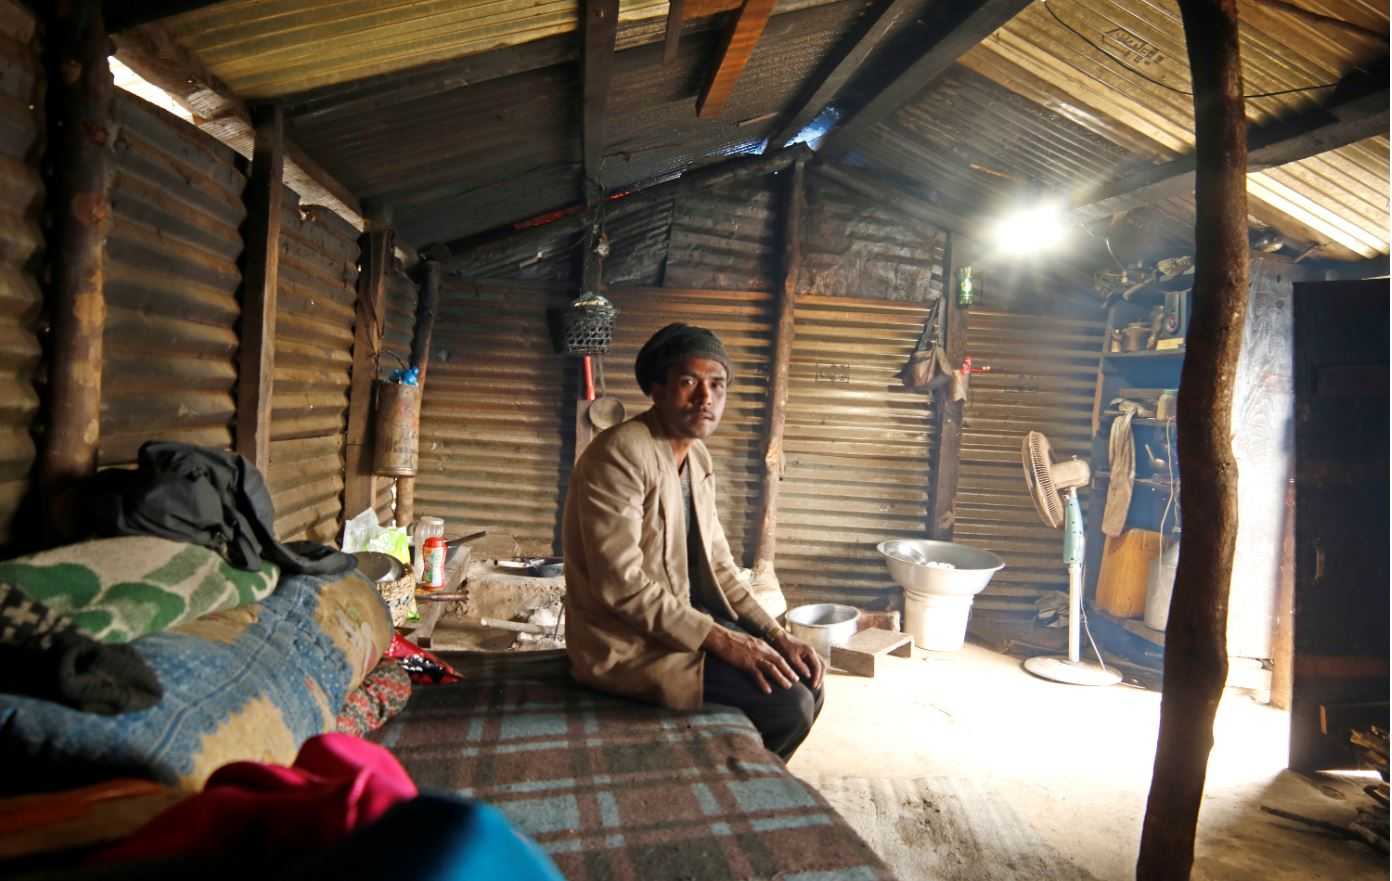 Four years after Nepal's deadly earthquakes, survivors continue to live in disarray